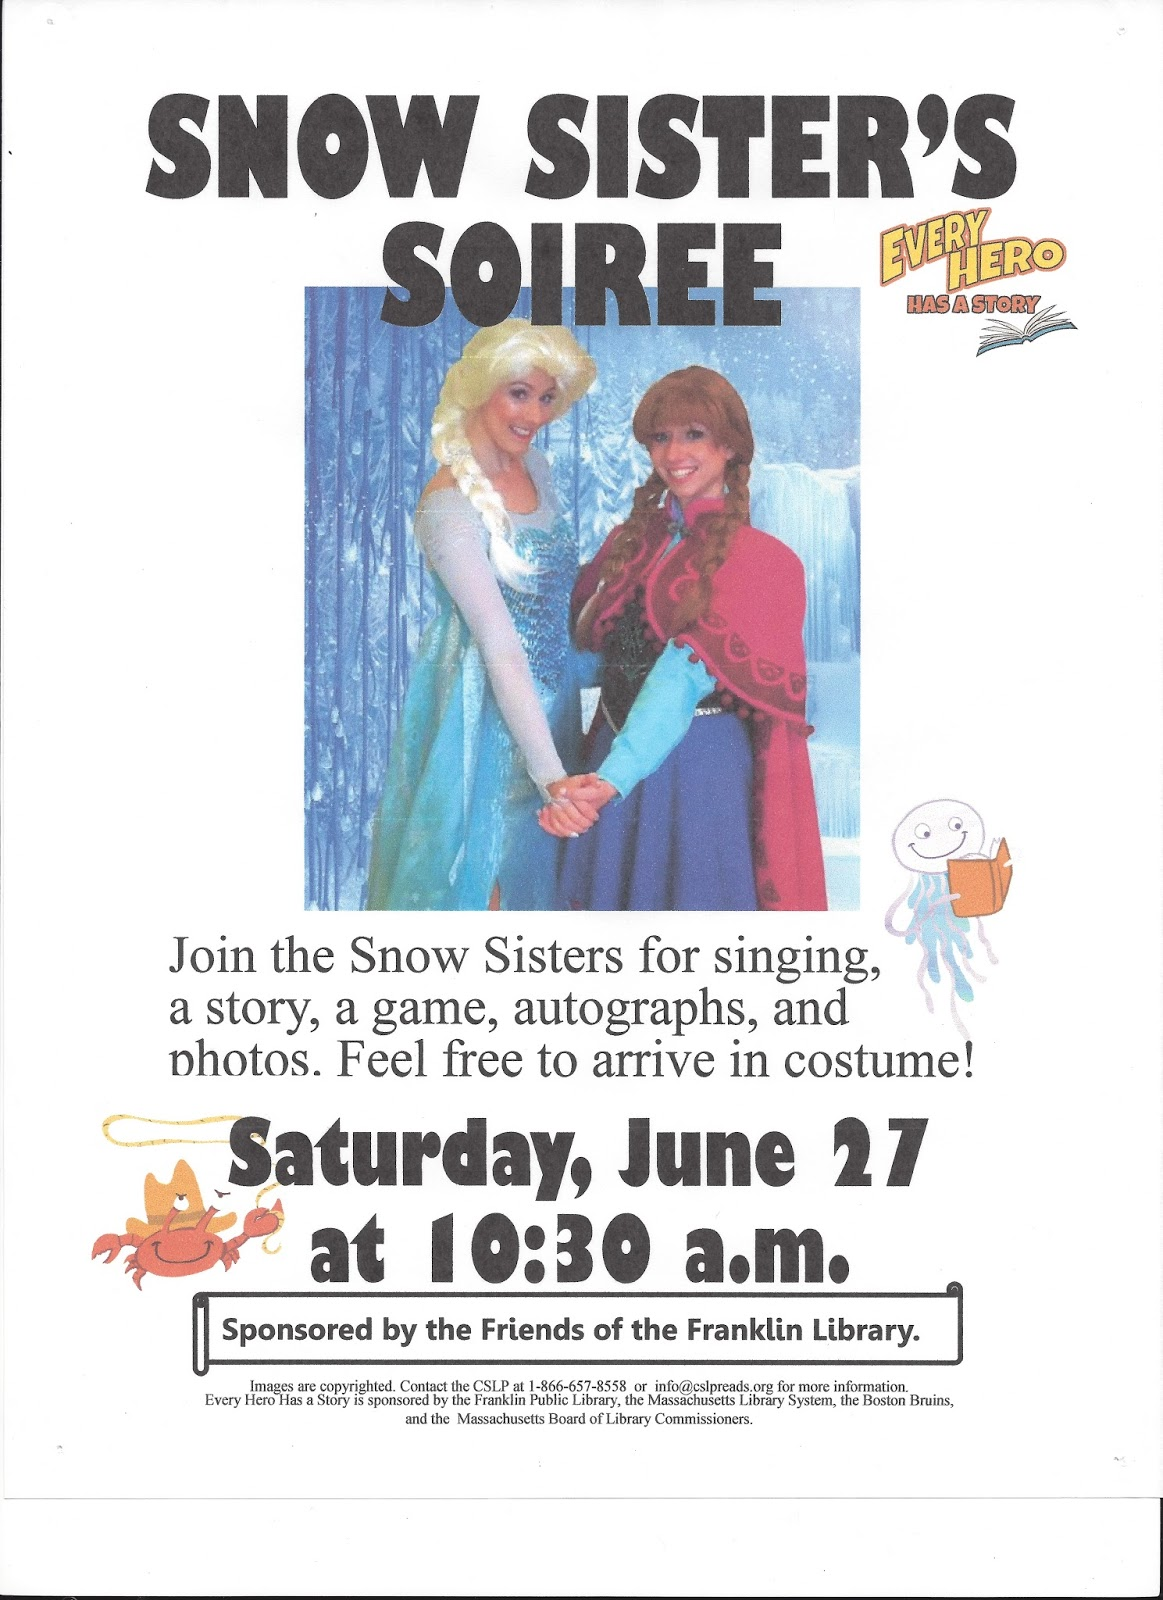 Snow Sister's Soiree - Franklin Library - 6/27 - 10:30 AM